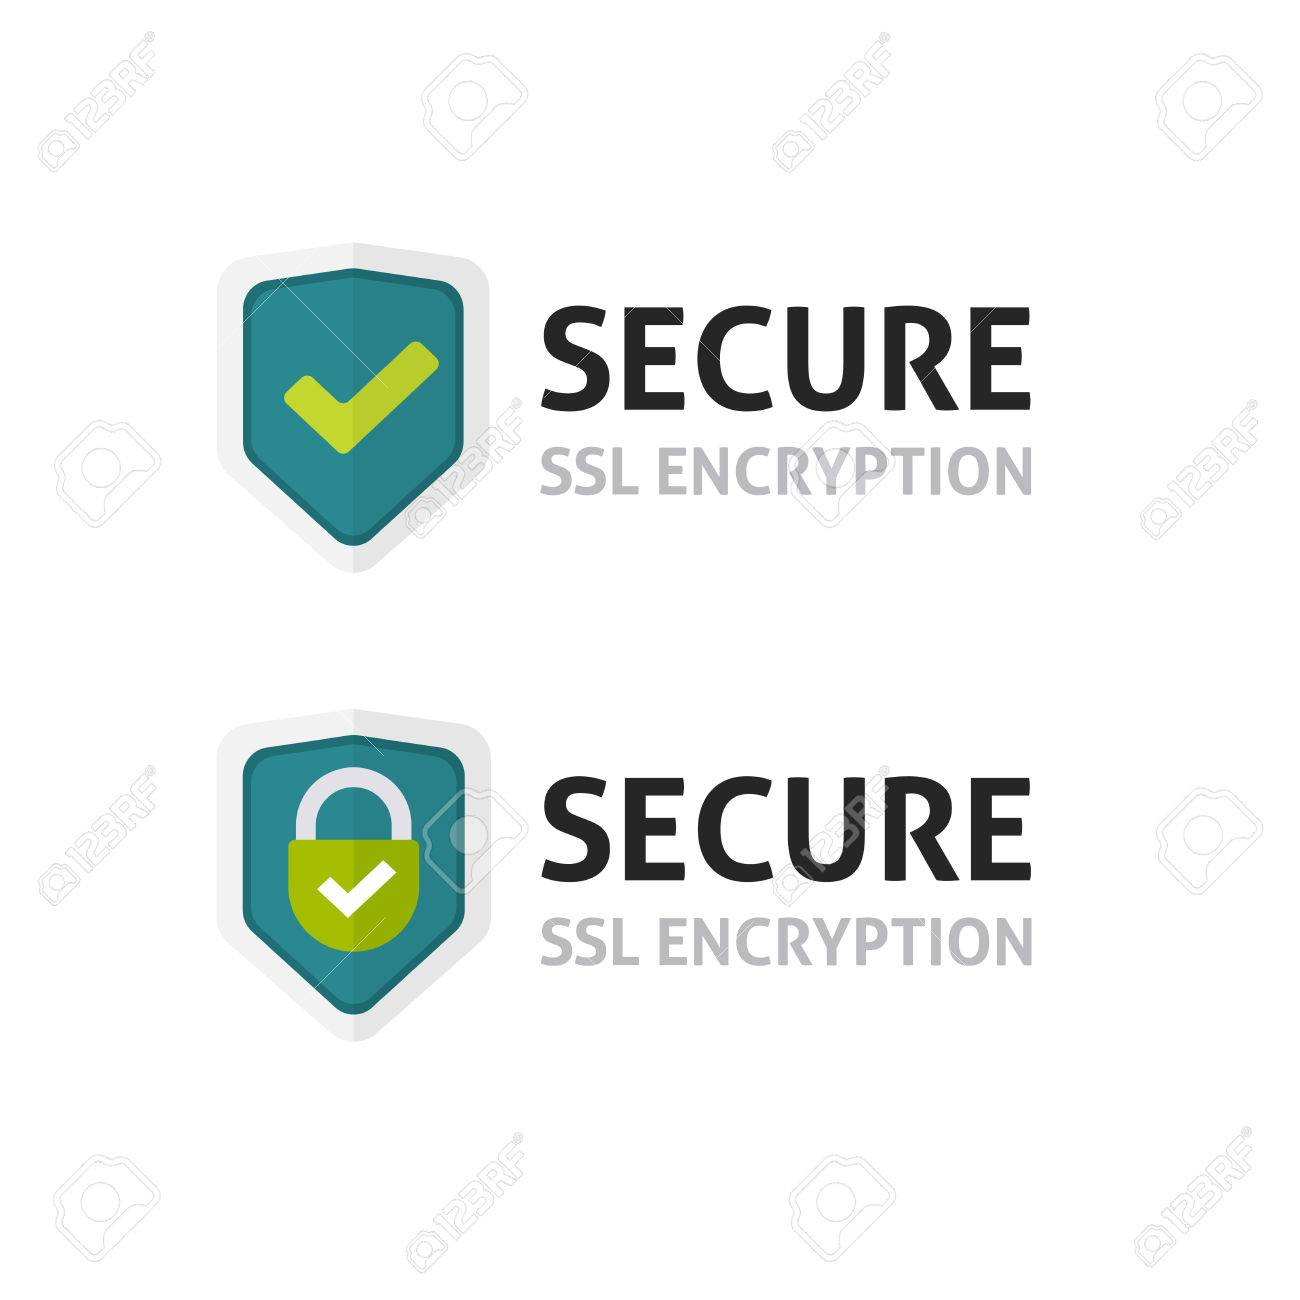 SSL certificate vector icon, secure encryption shield, protected connection label, secure lock symbol isolated on white - 74736609